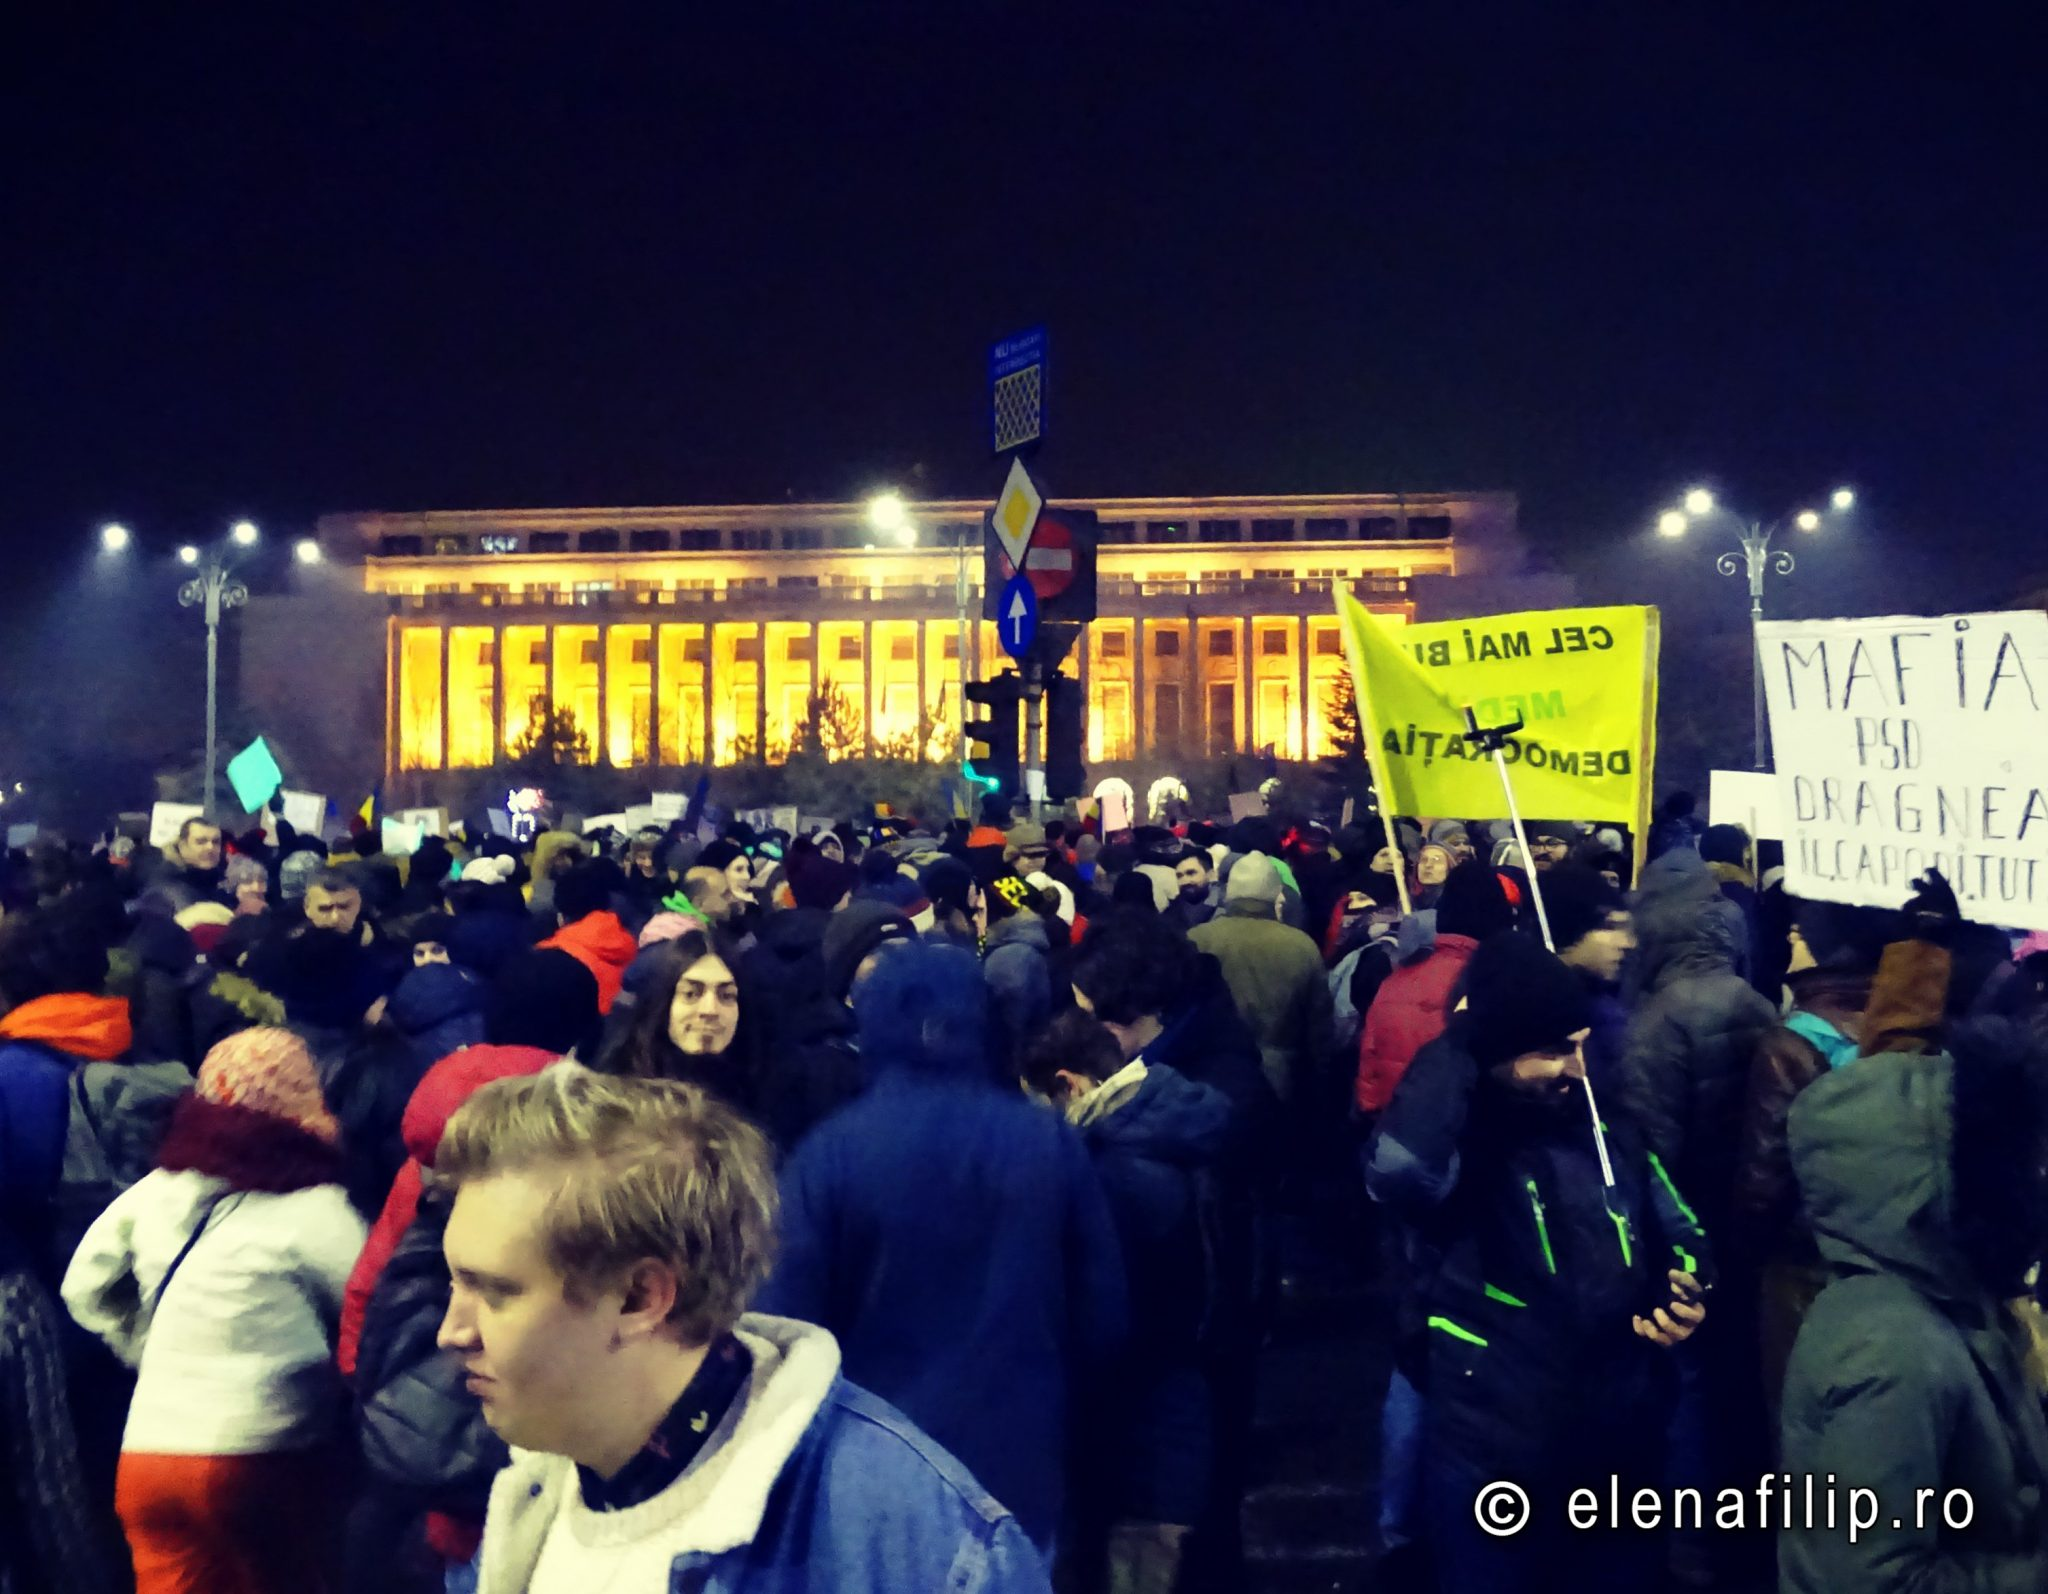 02.02.2017. Bucharest. 80.000 people. Emotional moments&funny messages. #Romania